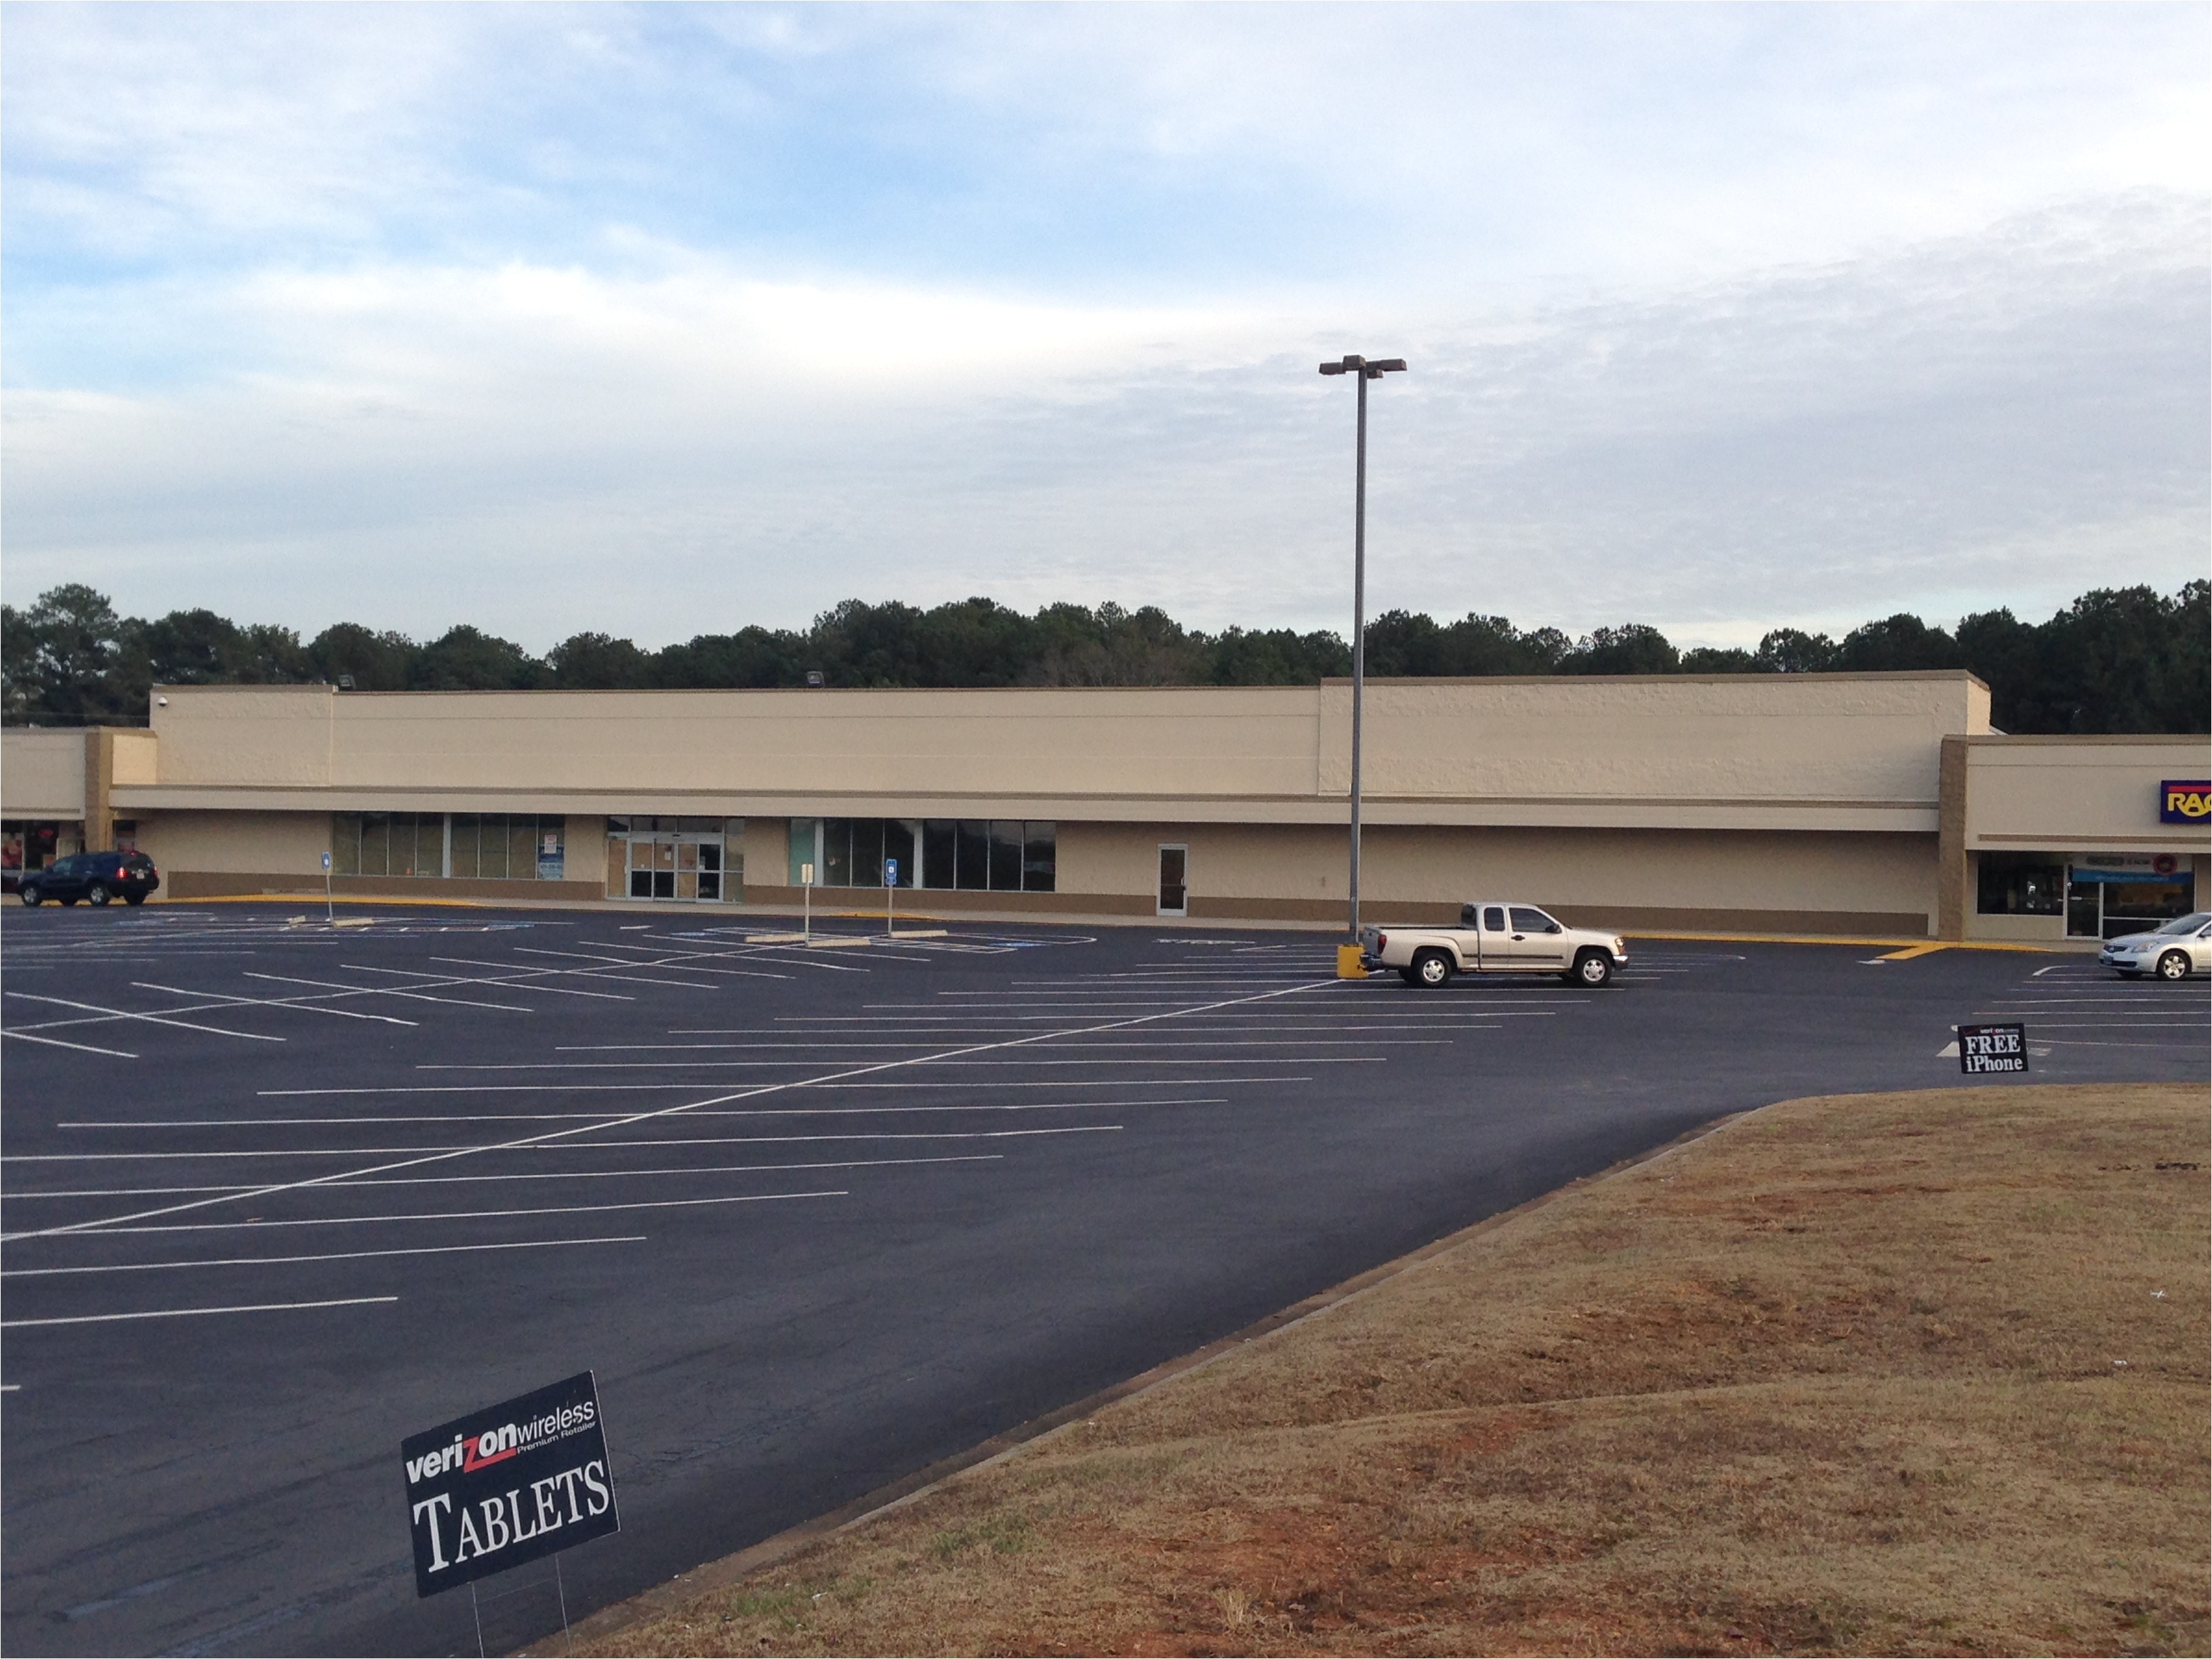 ollies bargain outlet coming to carrollton in 2014